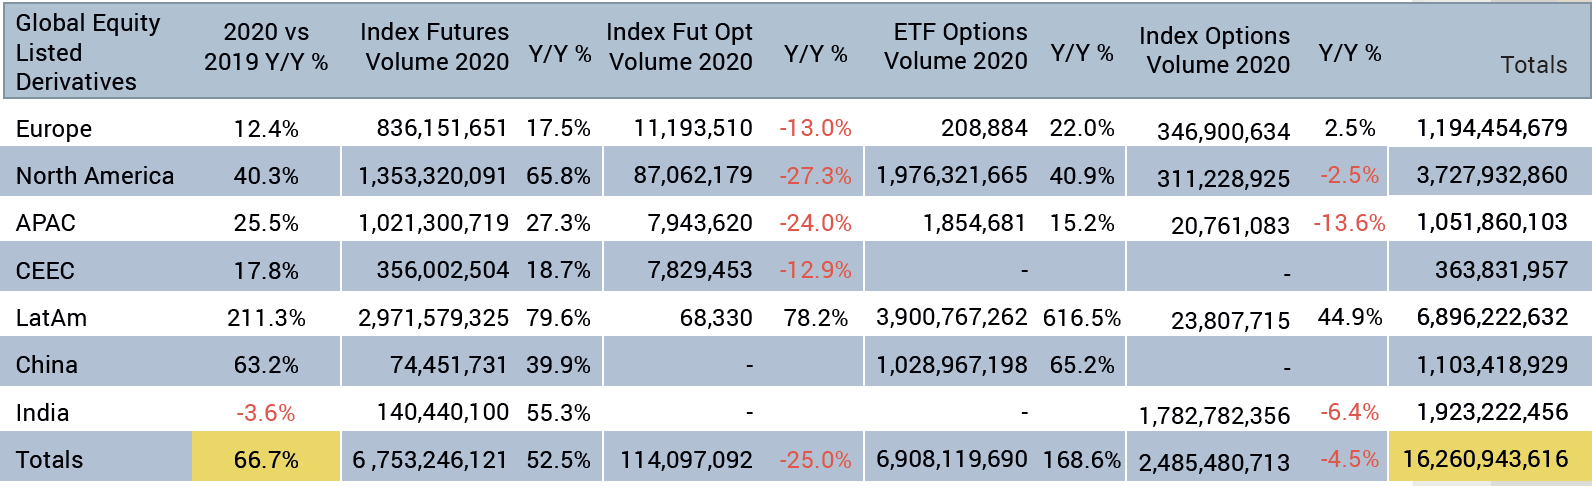 Index futures and ETF options drive growth